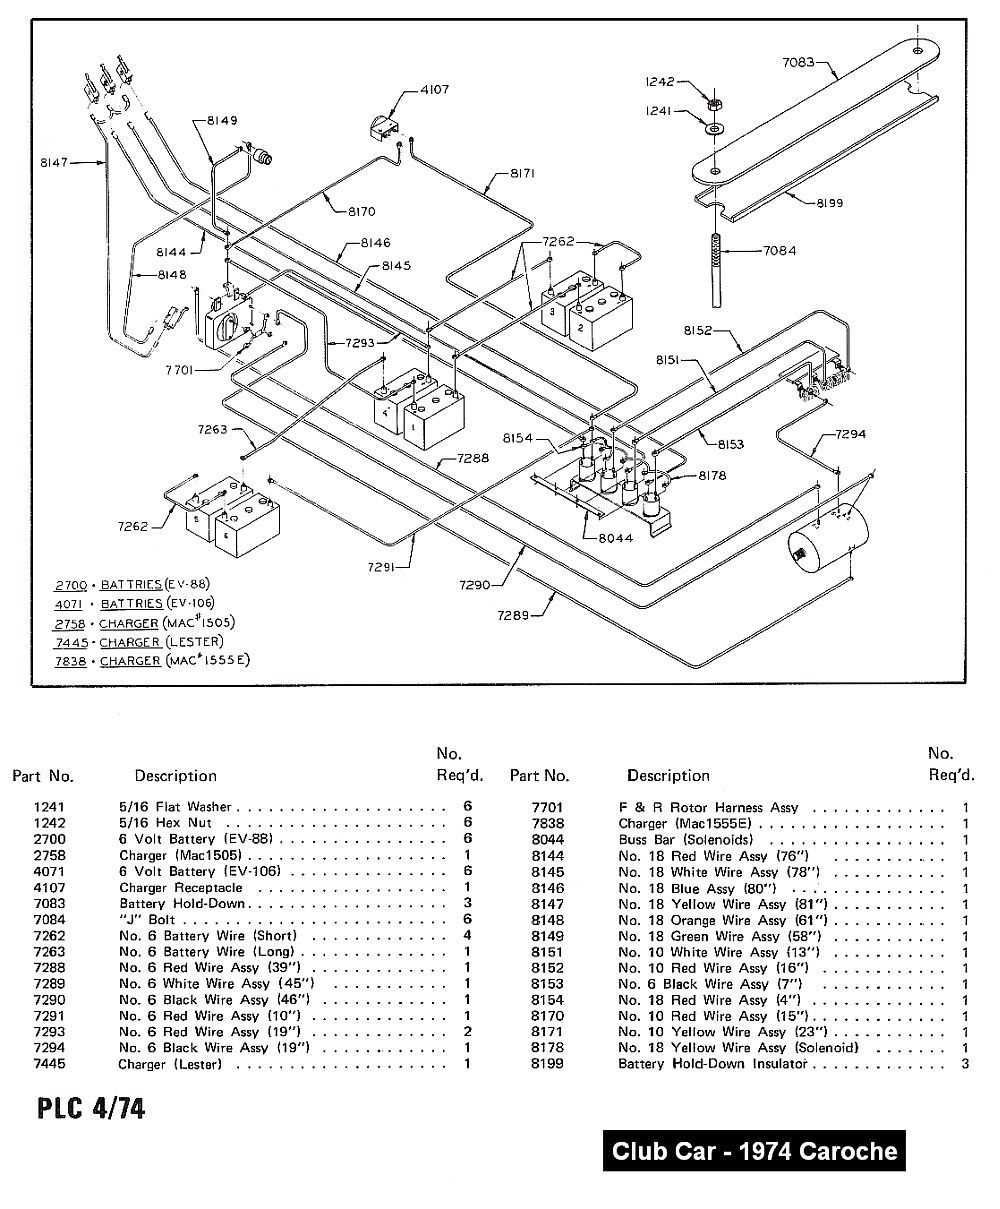 d5c55 club car caroche wiring diagram